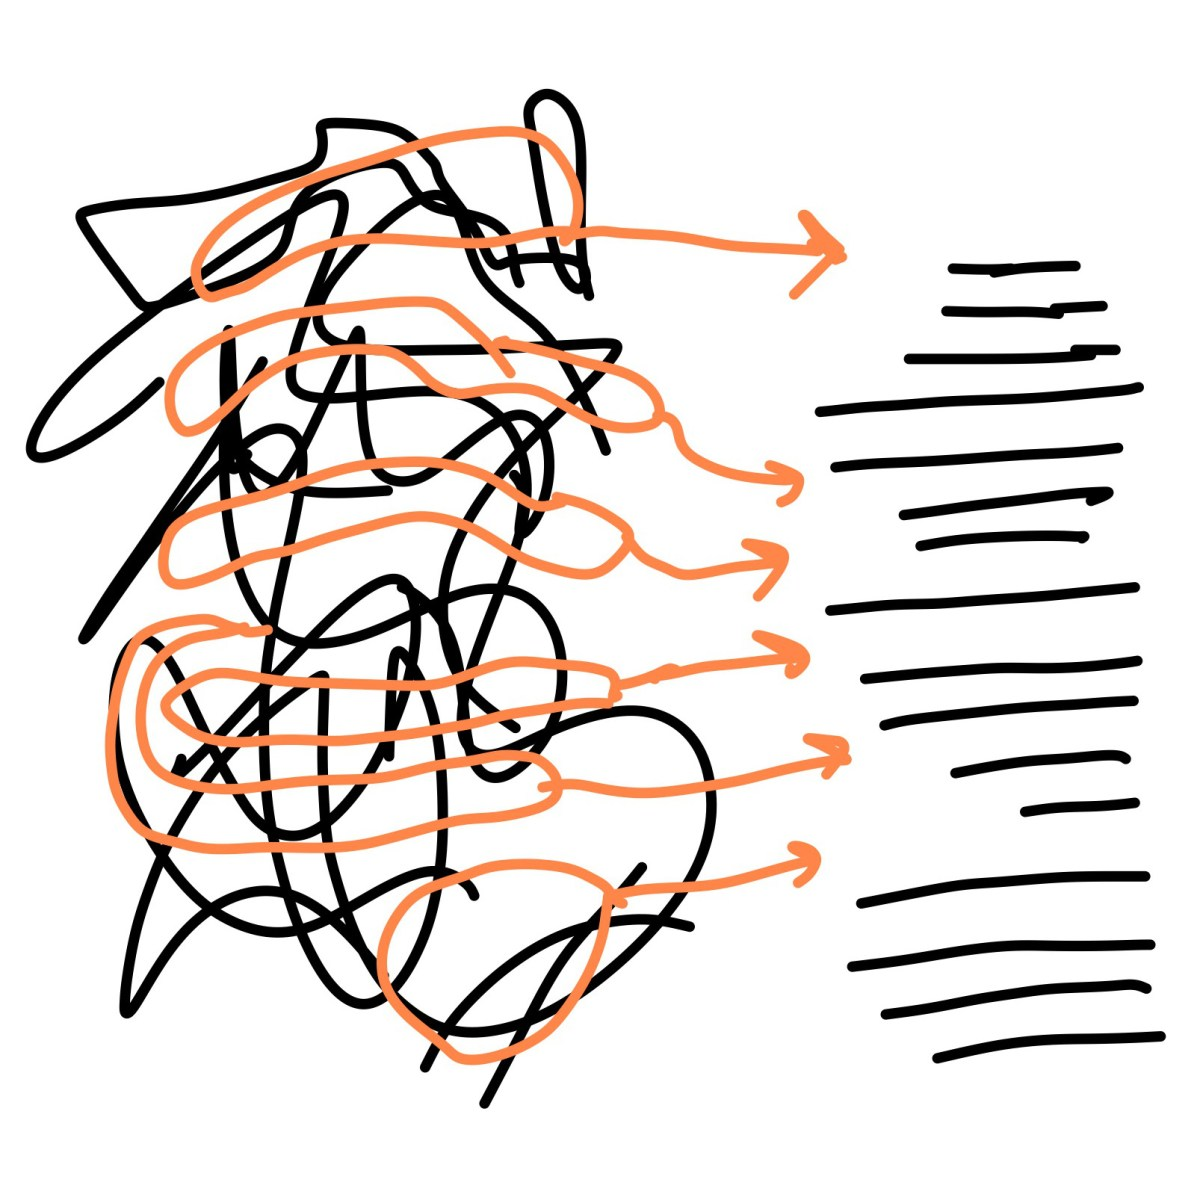 Scribbles turning into ordered lines